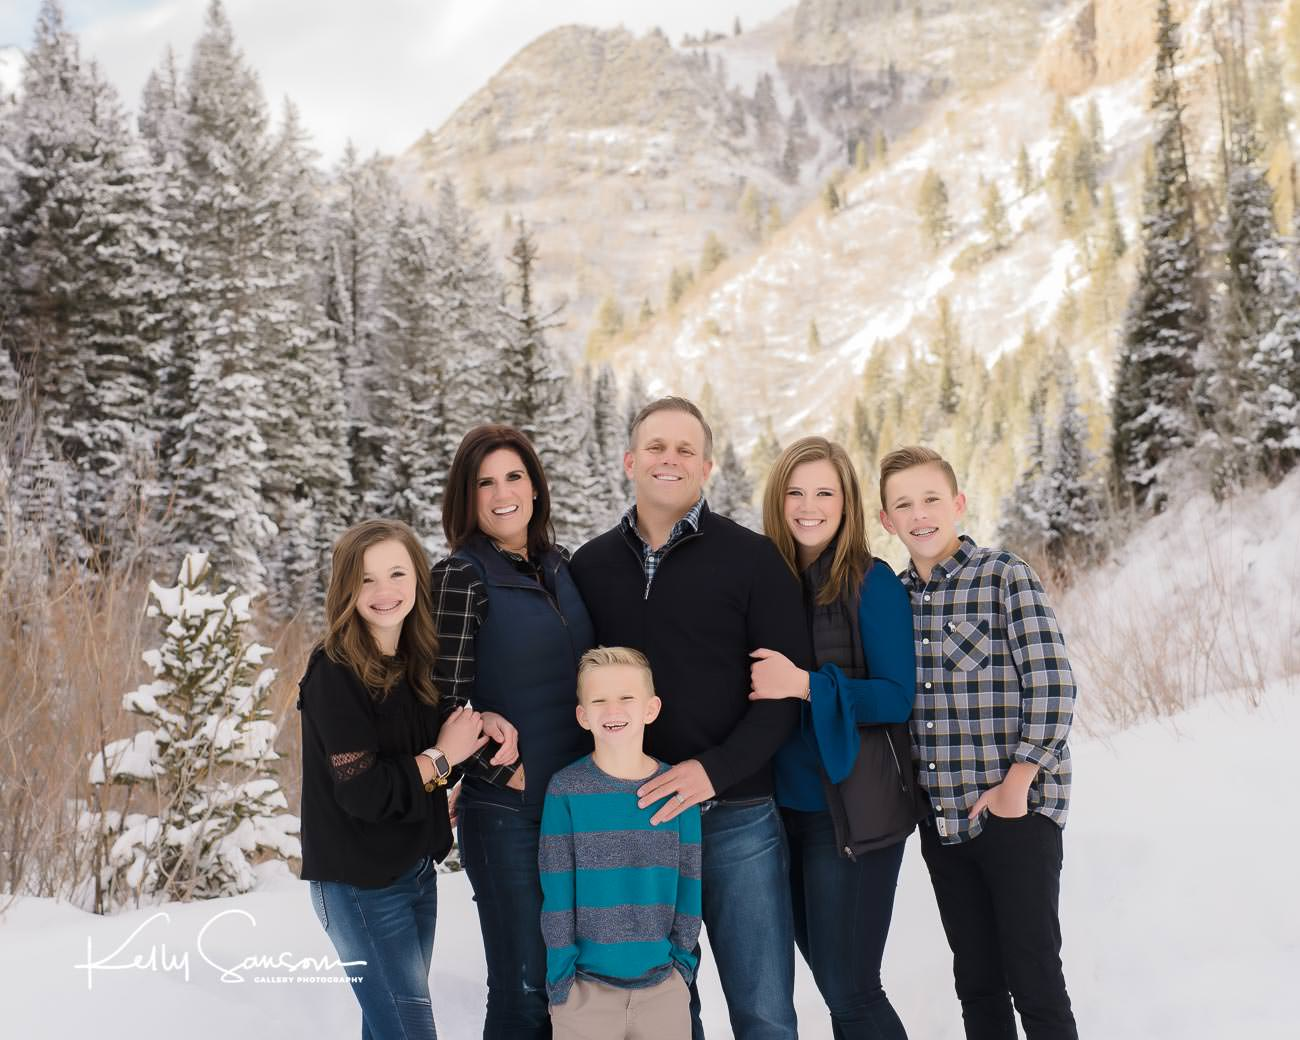 family snuggling together with snowy pines and mountain behind winter family photography at Jordan pines.